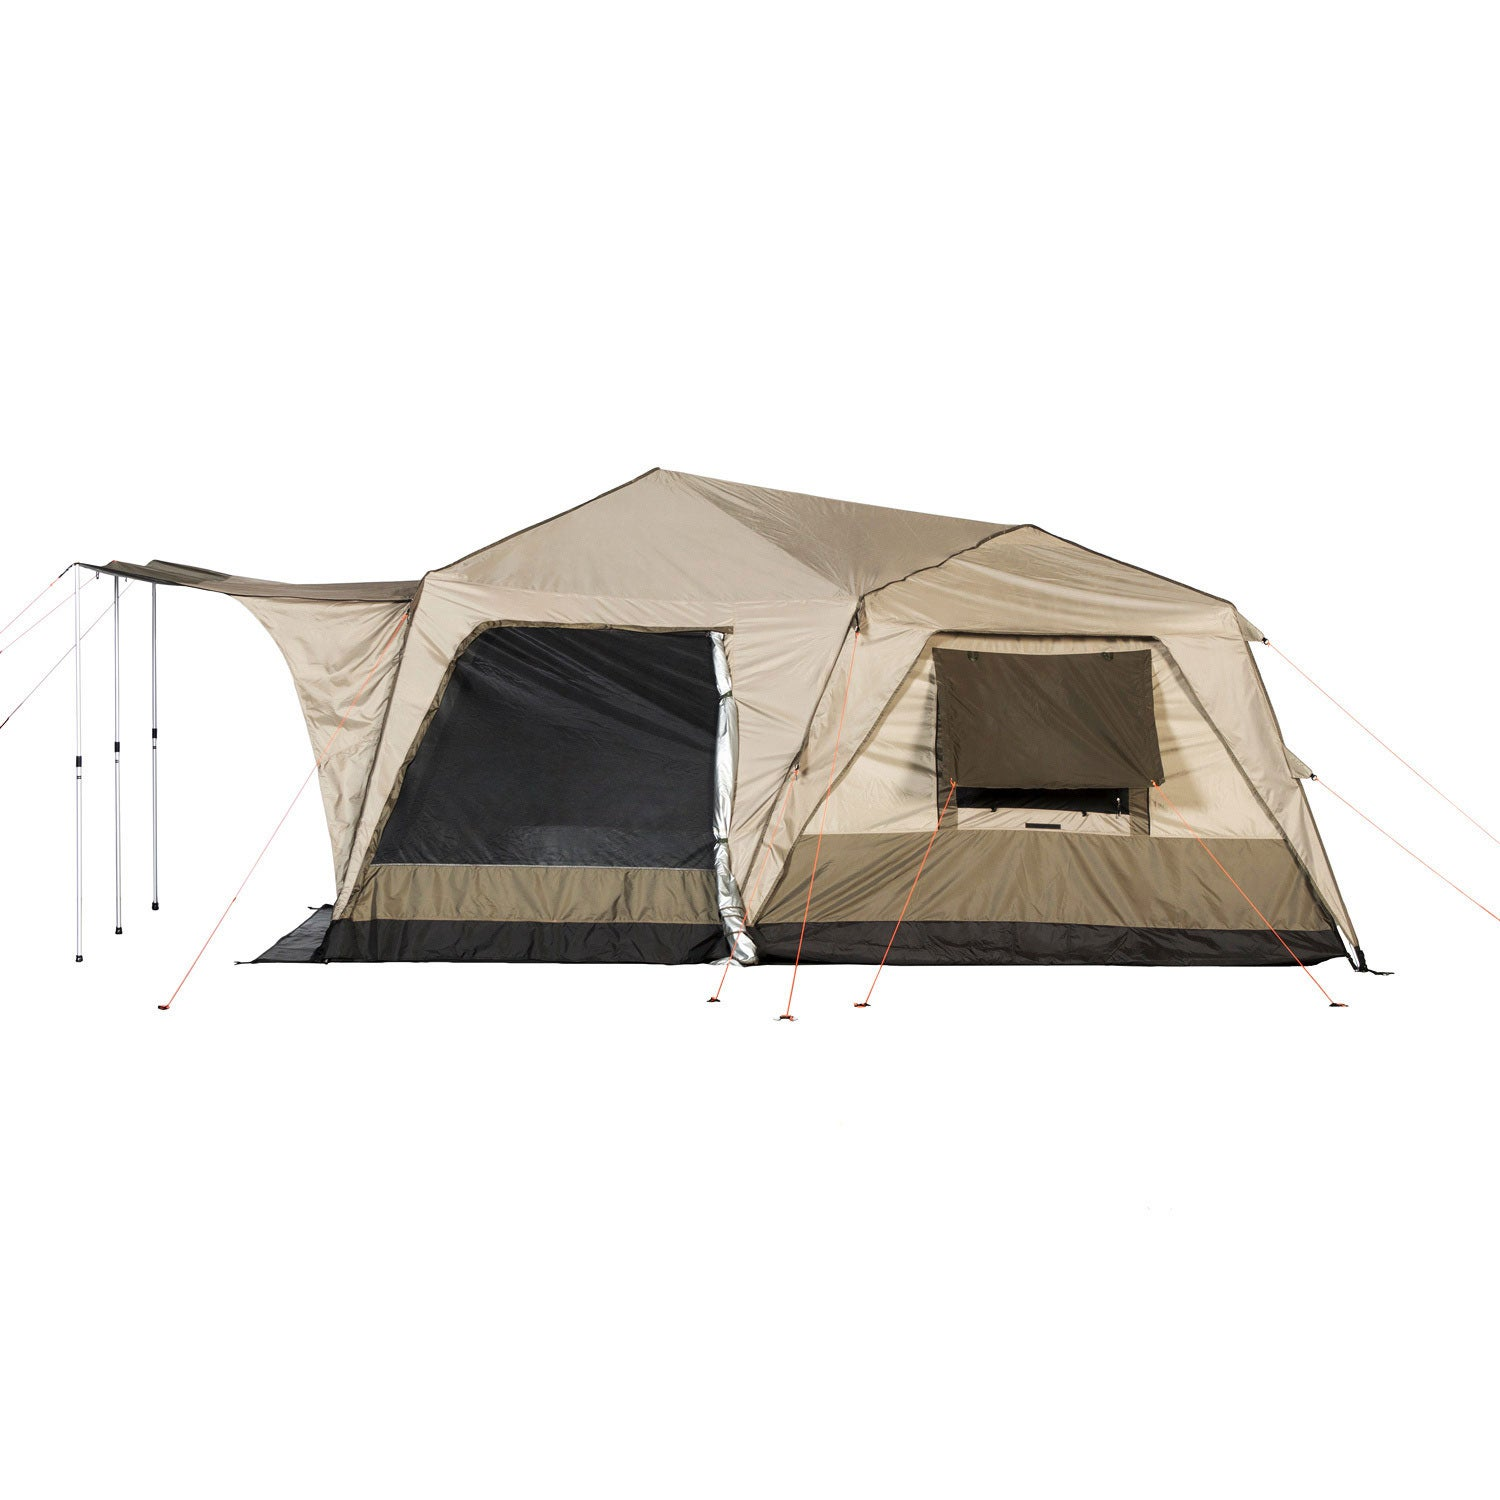 Black Pine Supreme 10-person Turbo Tent